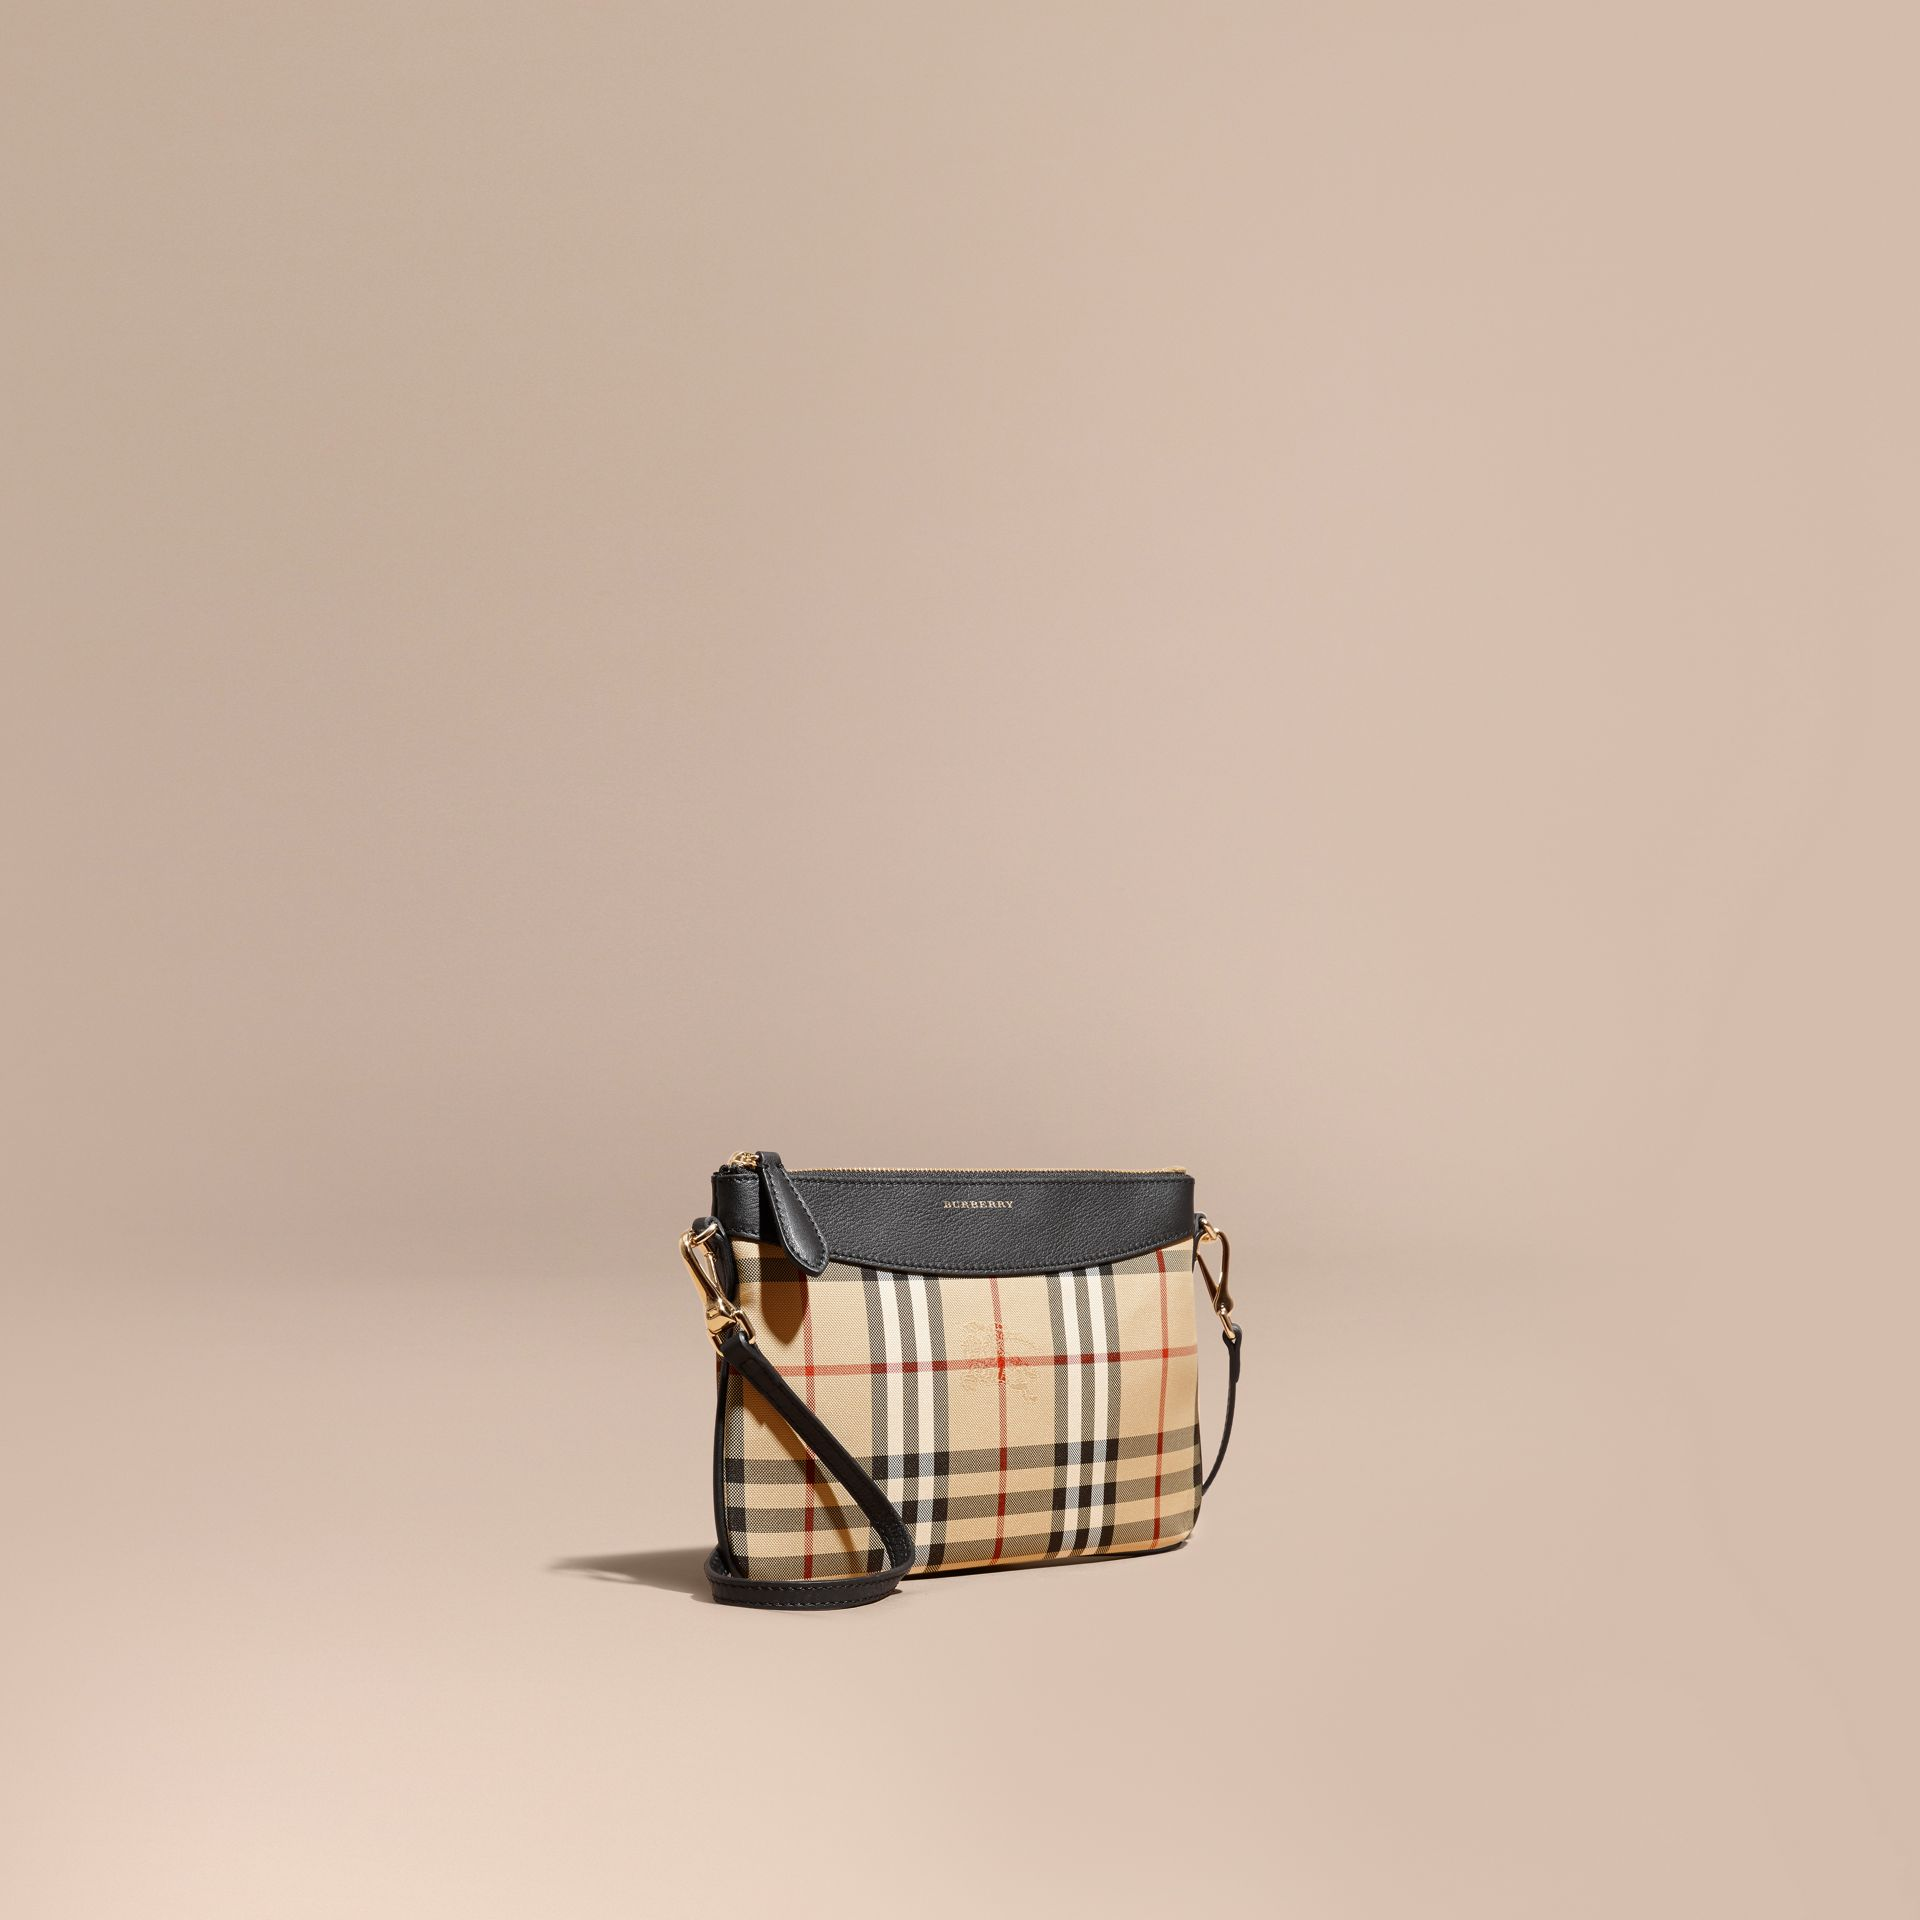 Horseferry Check and Leather Clutch Bag in Black - gallery image 1